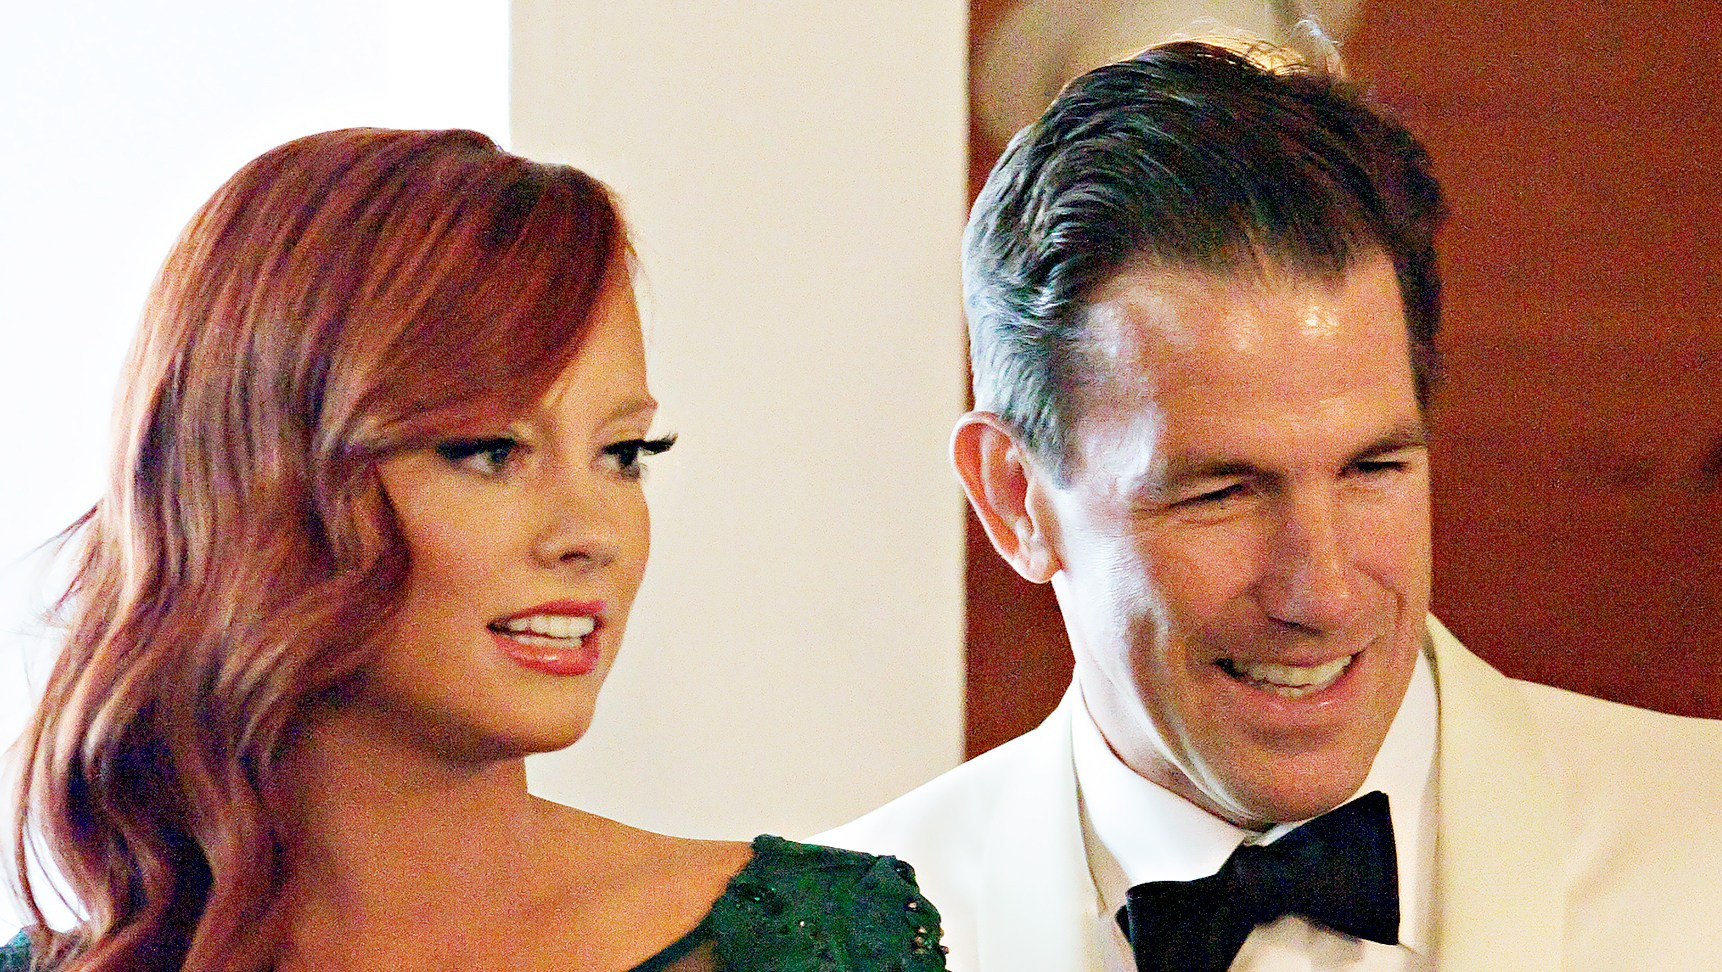 Kathryn-Dennis-Thomas-Ravenel Testify About Drug Use